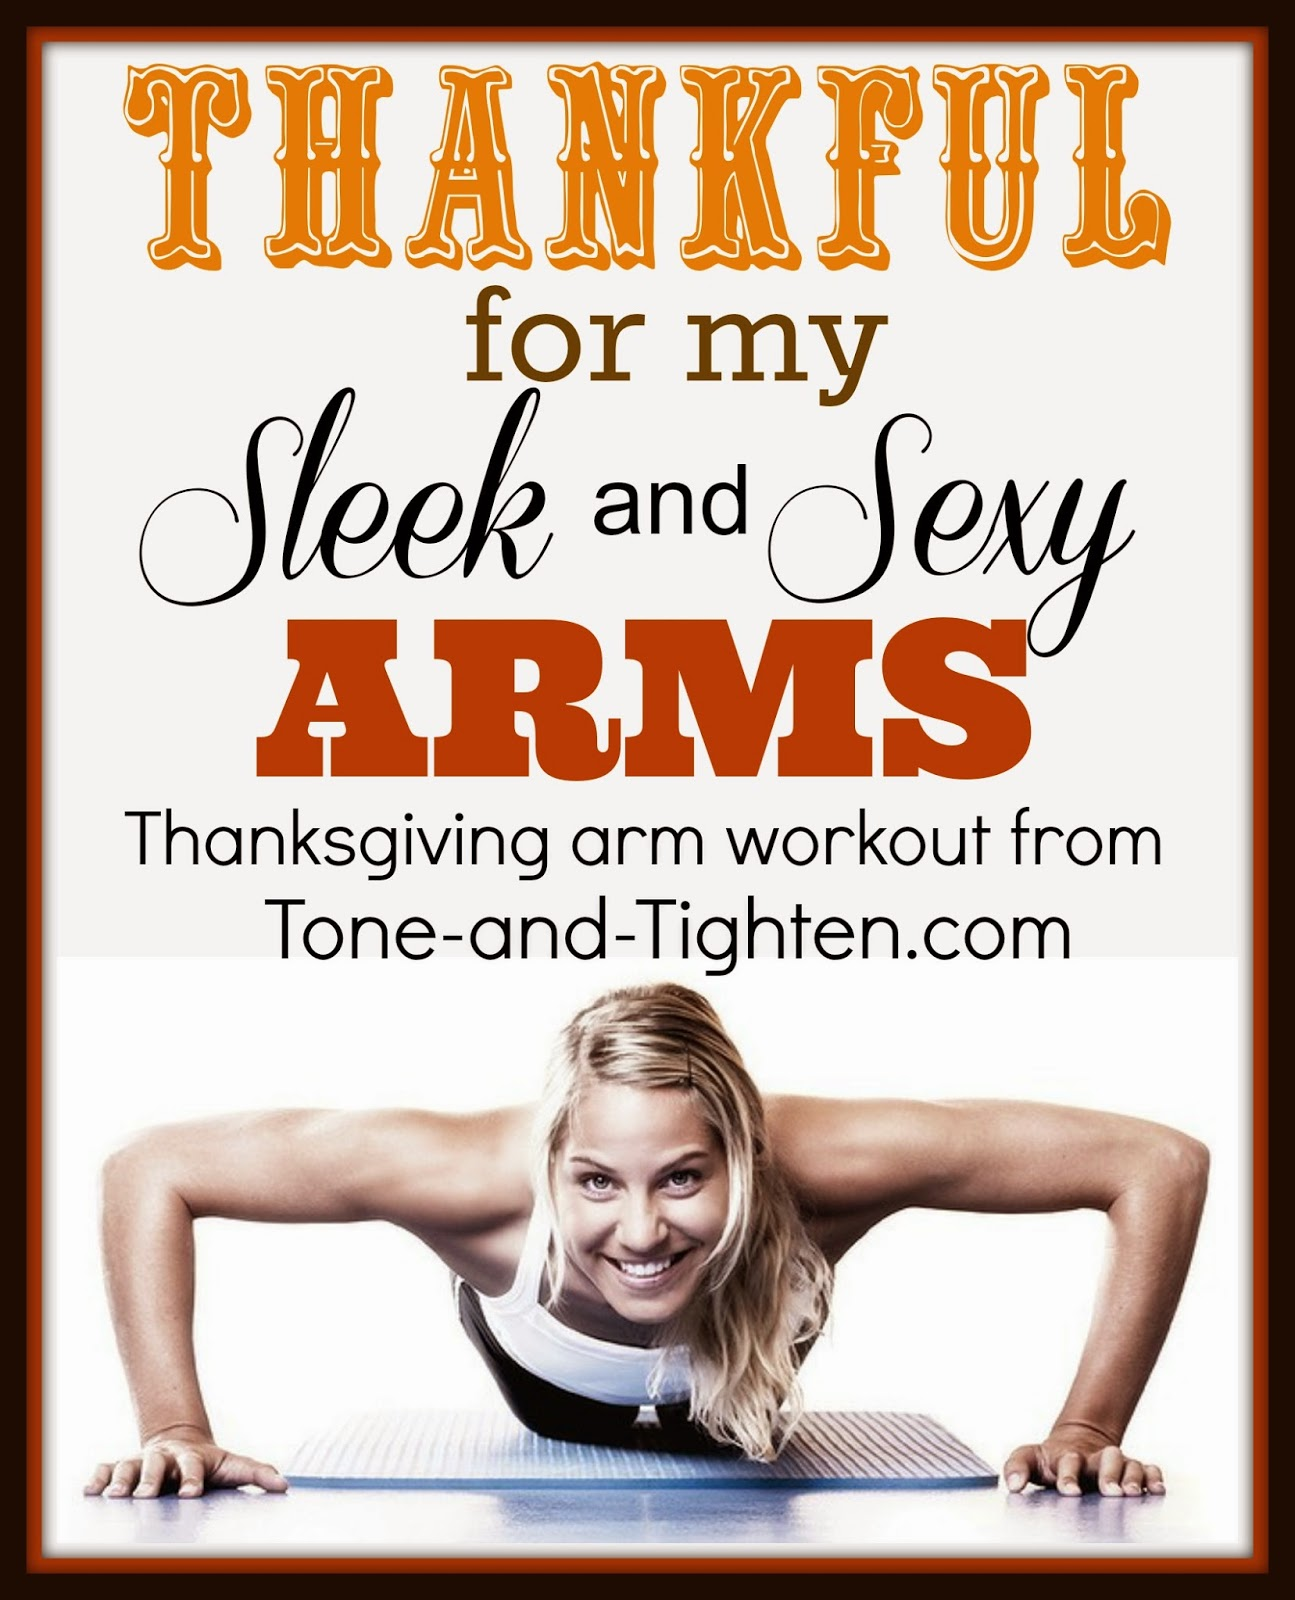 https://tone-and-tighten.com/2013/11/thankful-for-my-series-sleek-and-sexy-arms.html